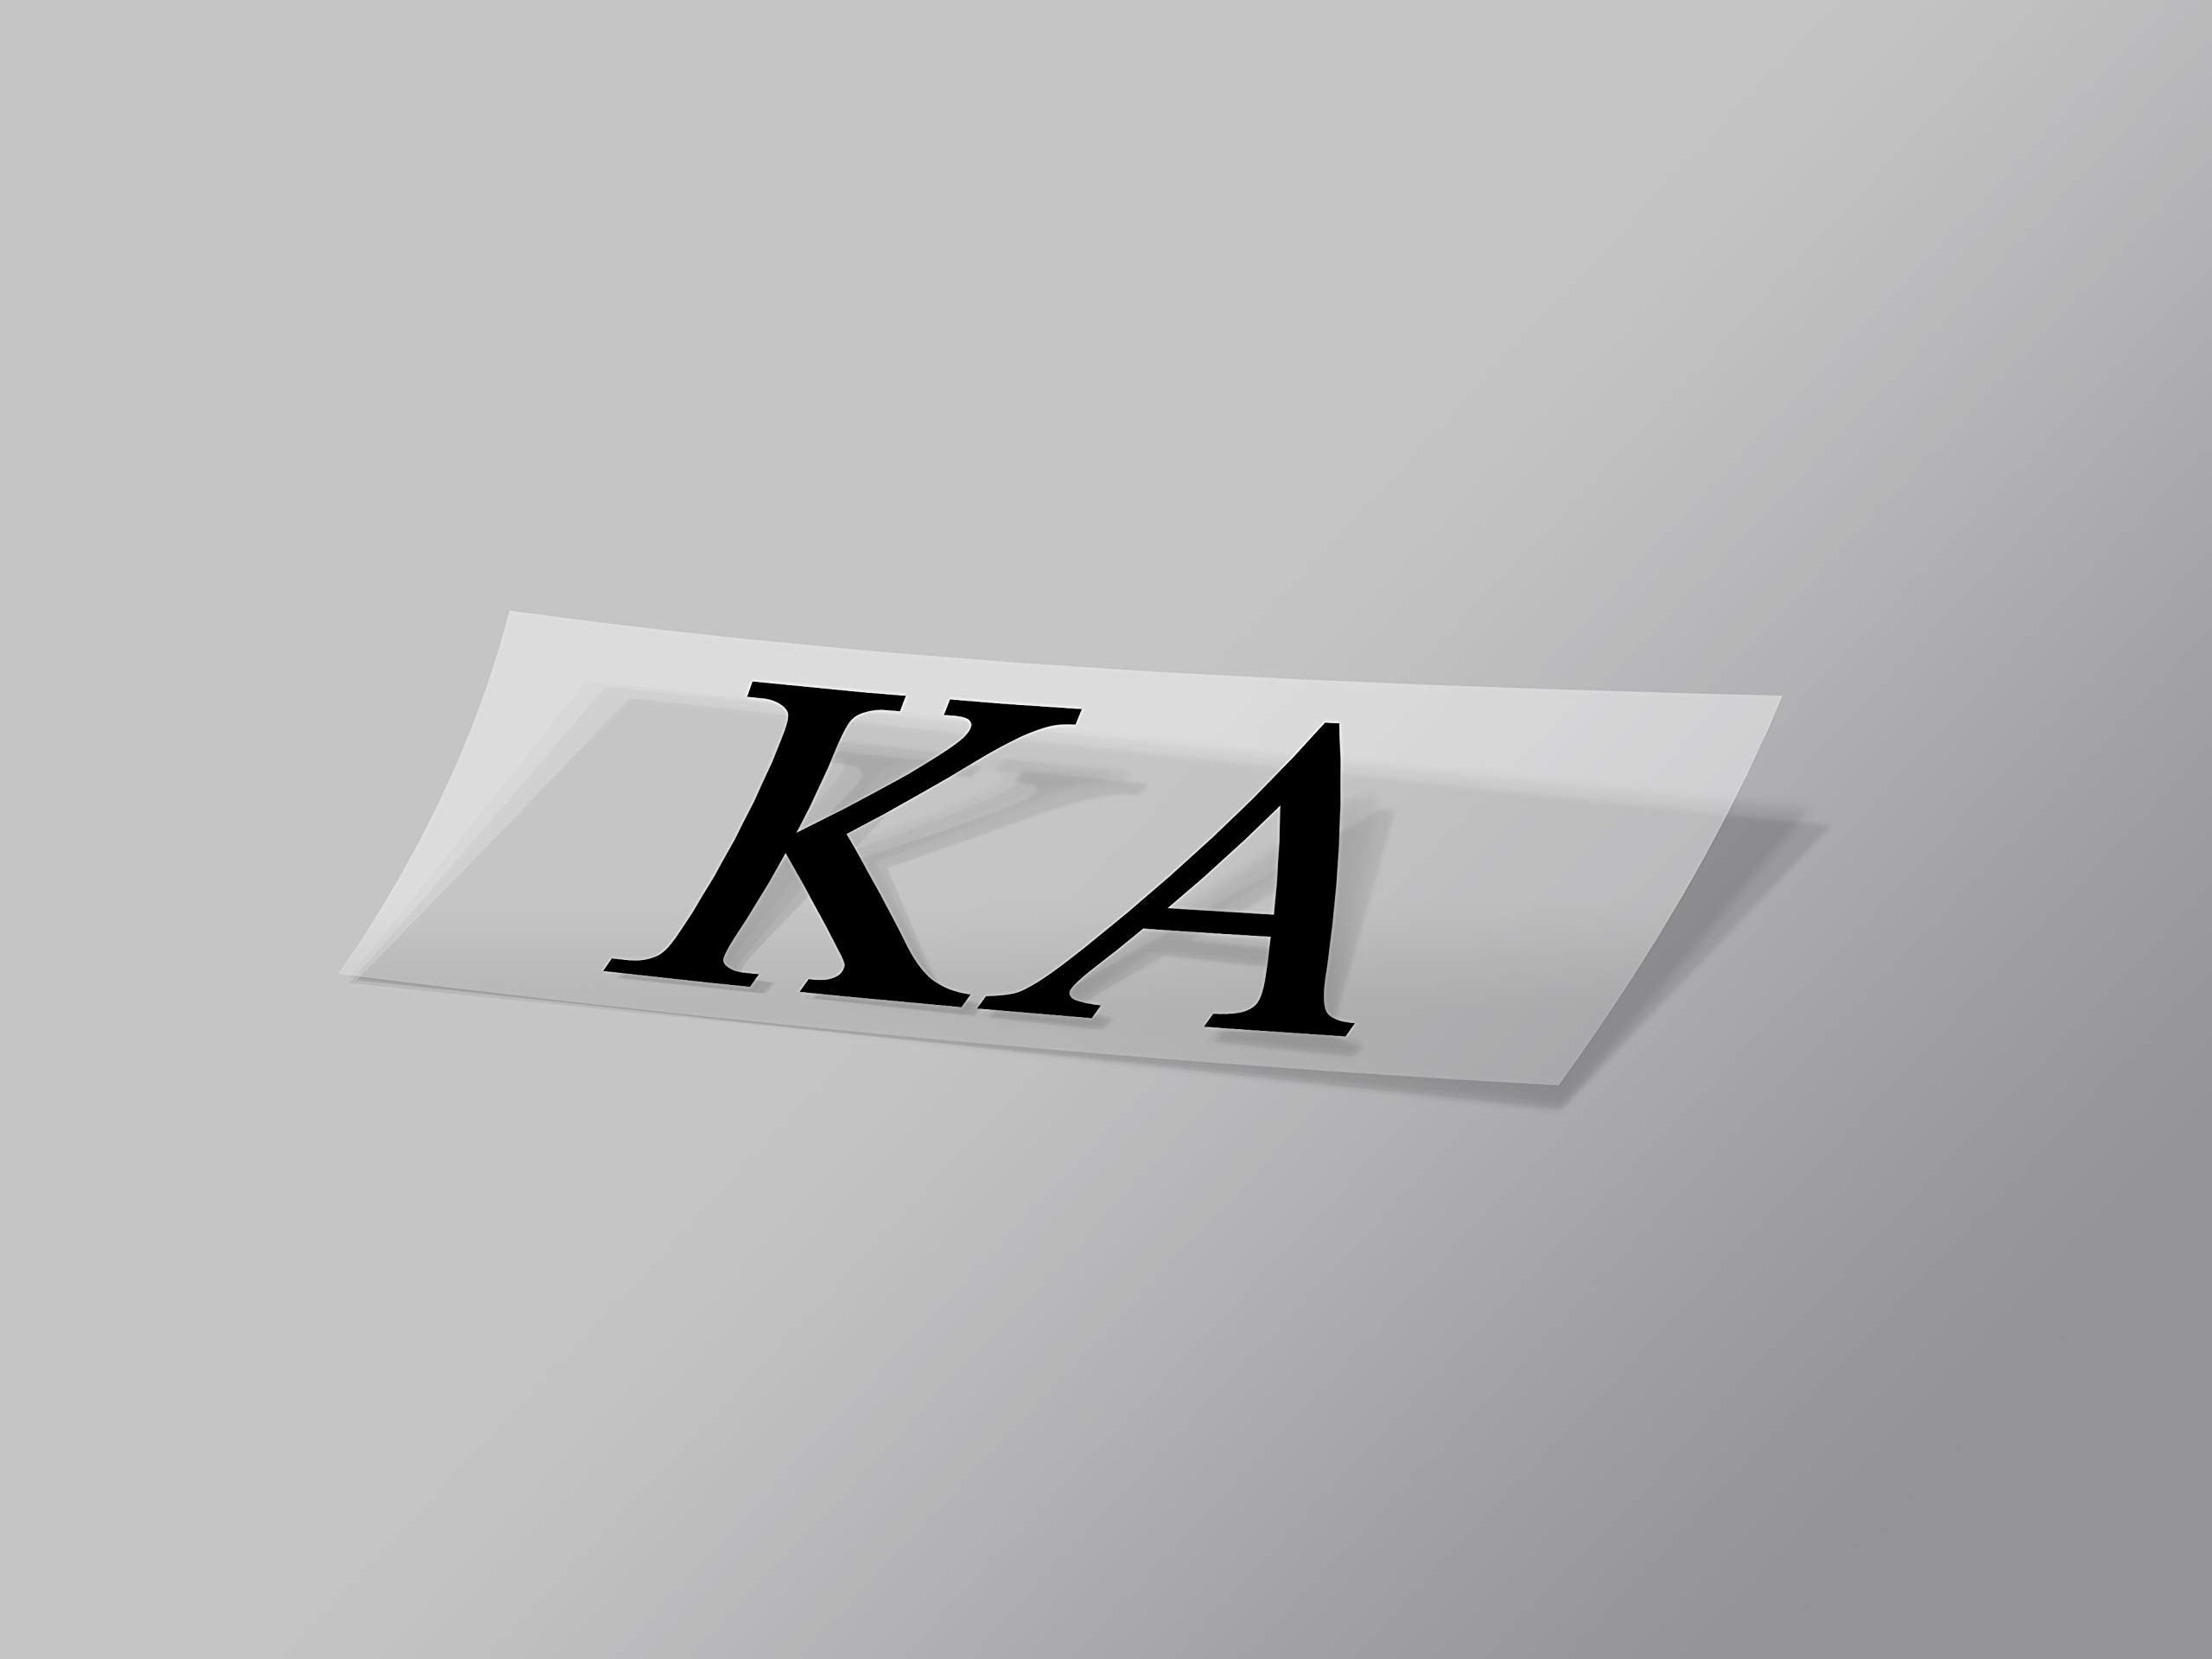 "Kappa Alpha Sticker Greek Sorority Decal for Car, Laptop, Windows, Officially Licensed Product, Monogram Design 2.5"" Tall - Black"